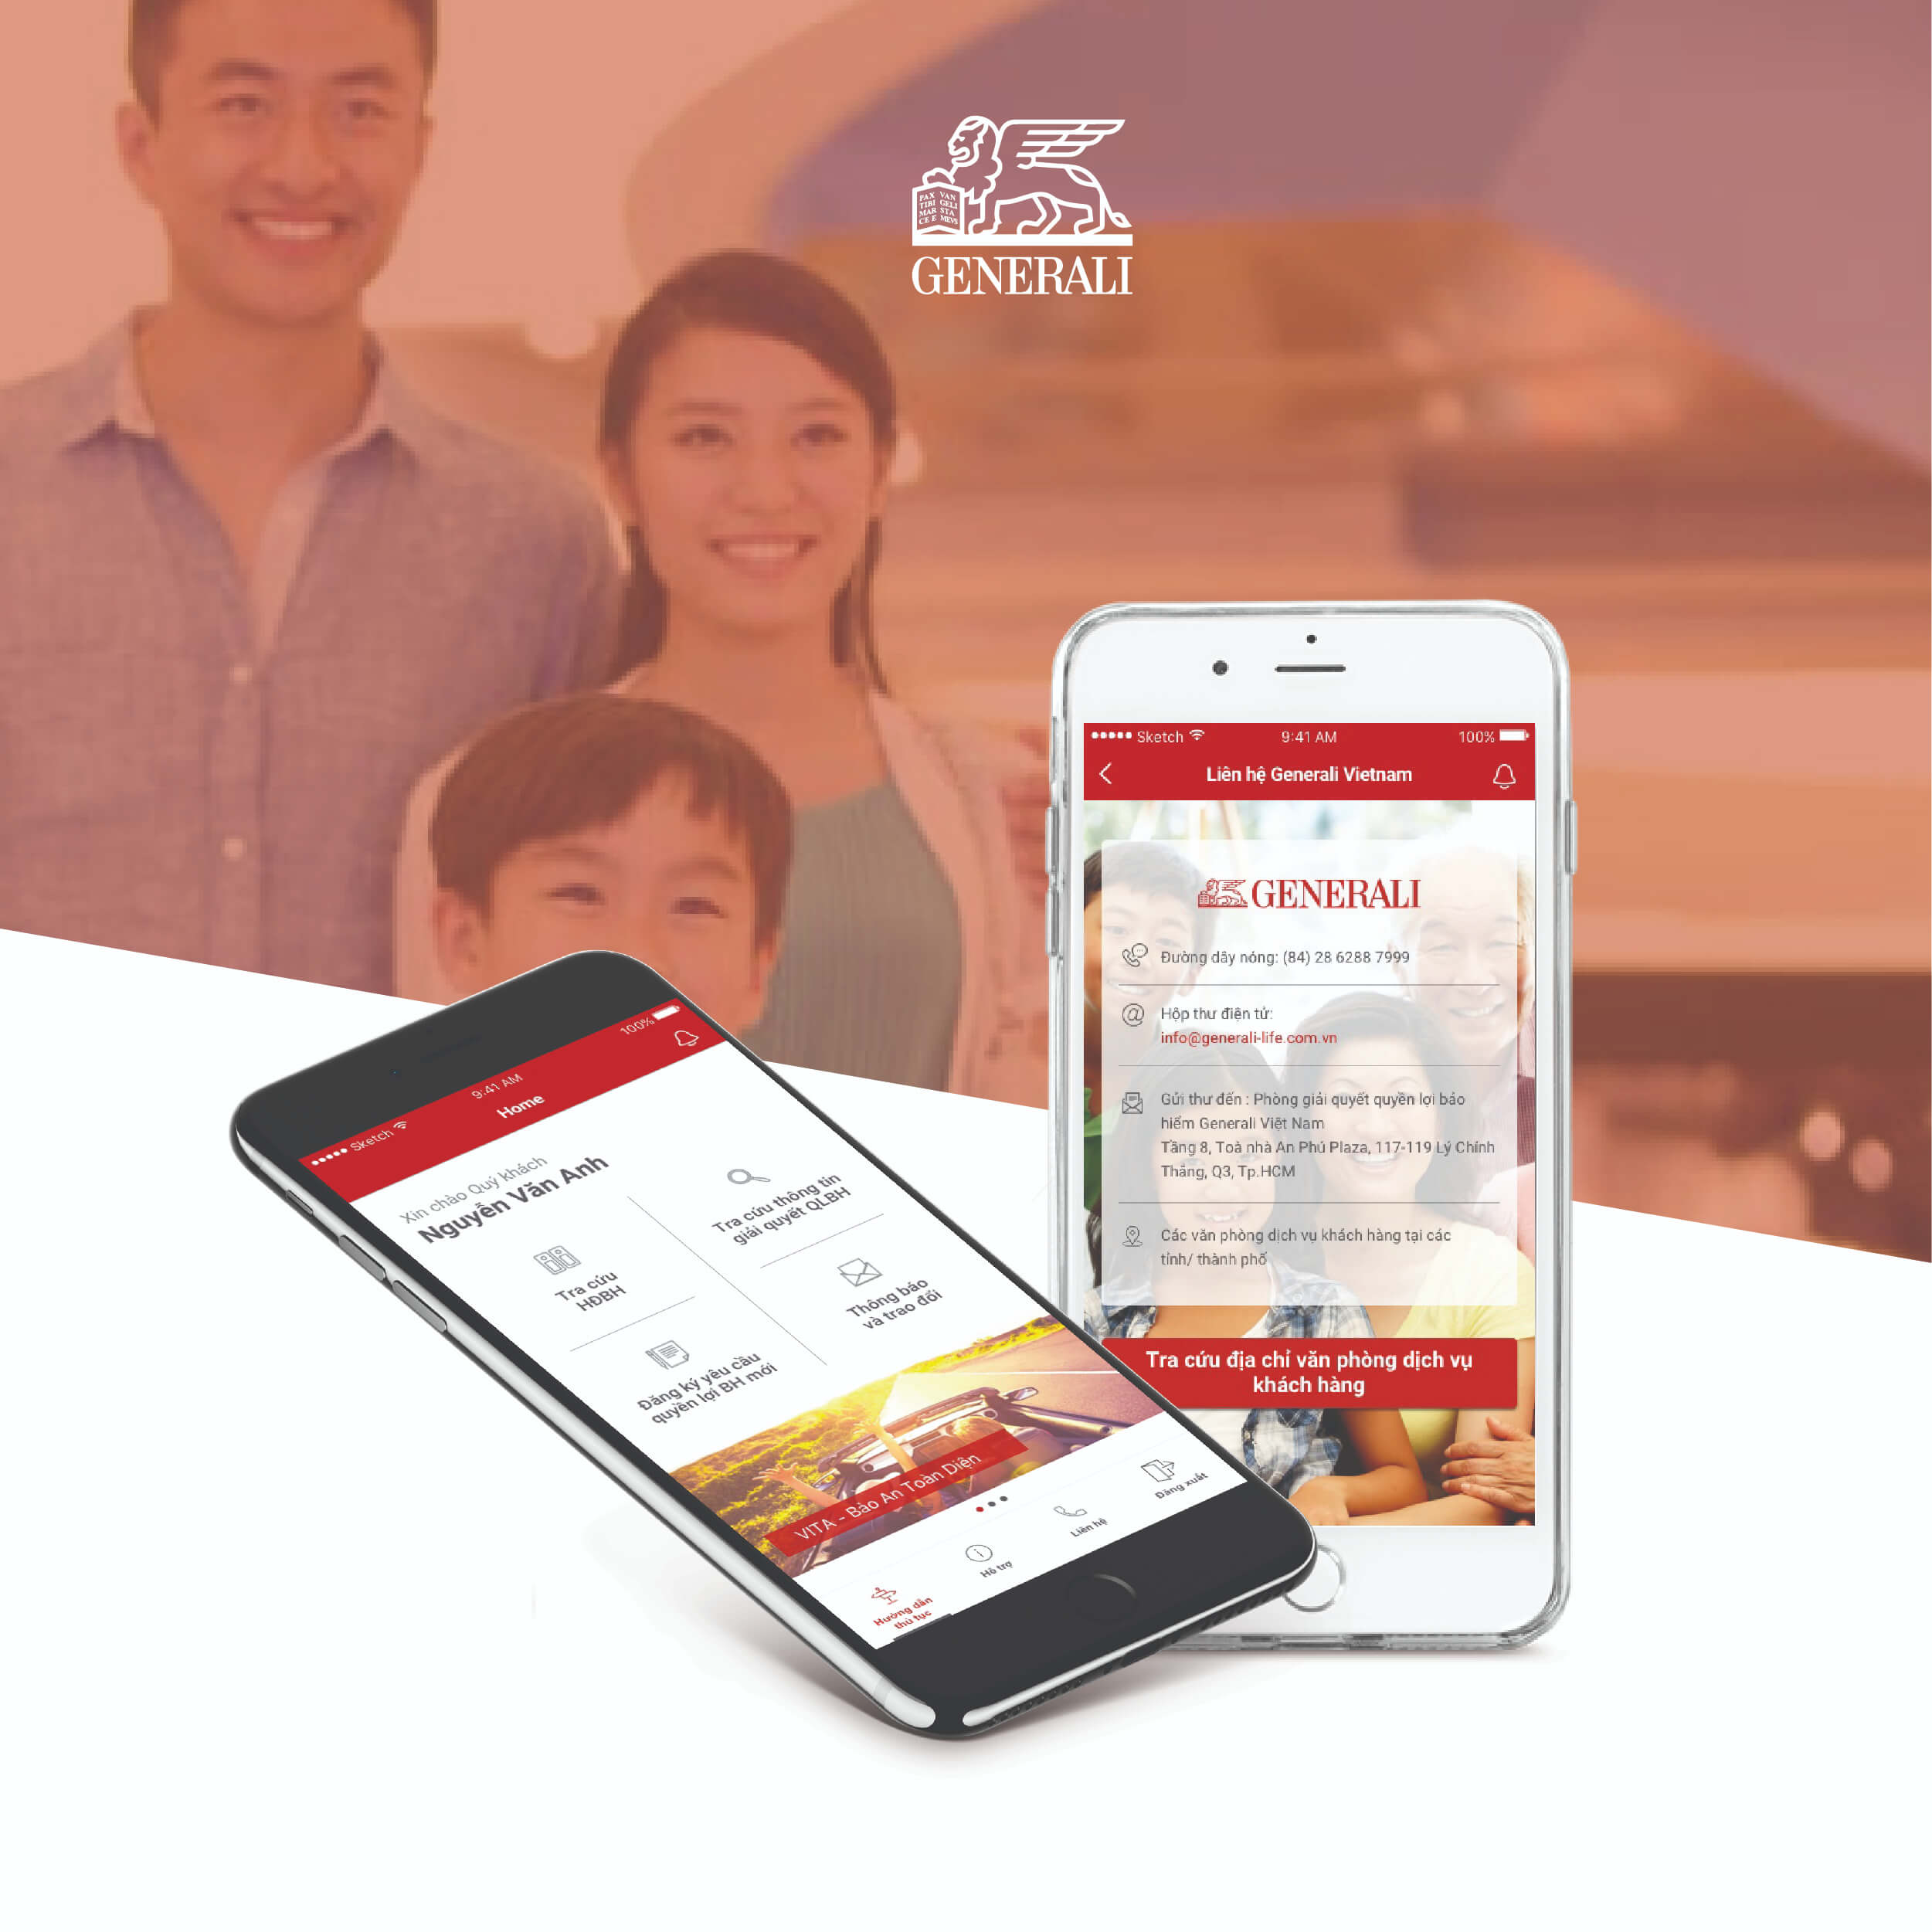 Generali - Mobile Application